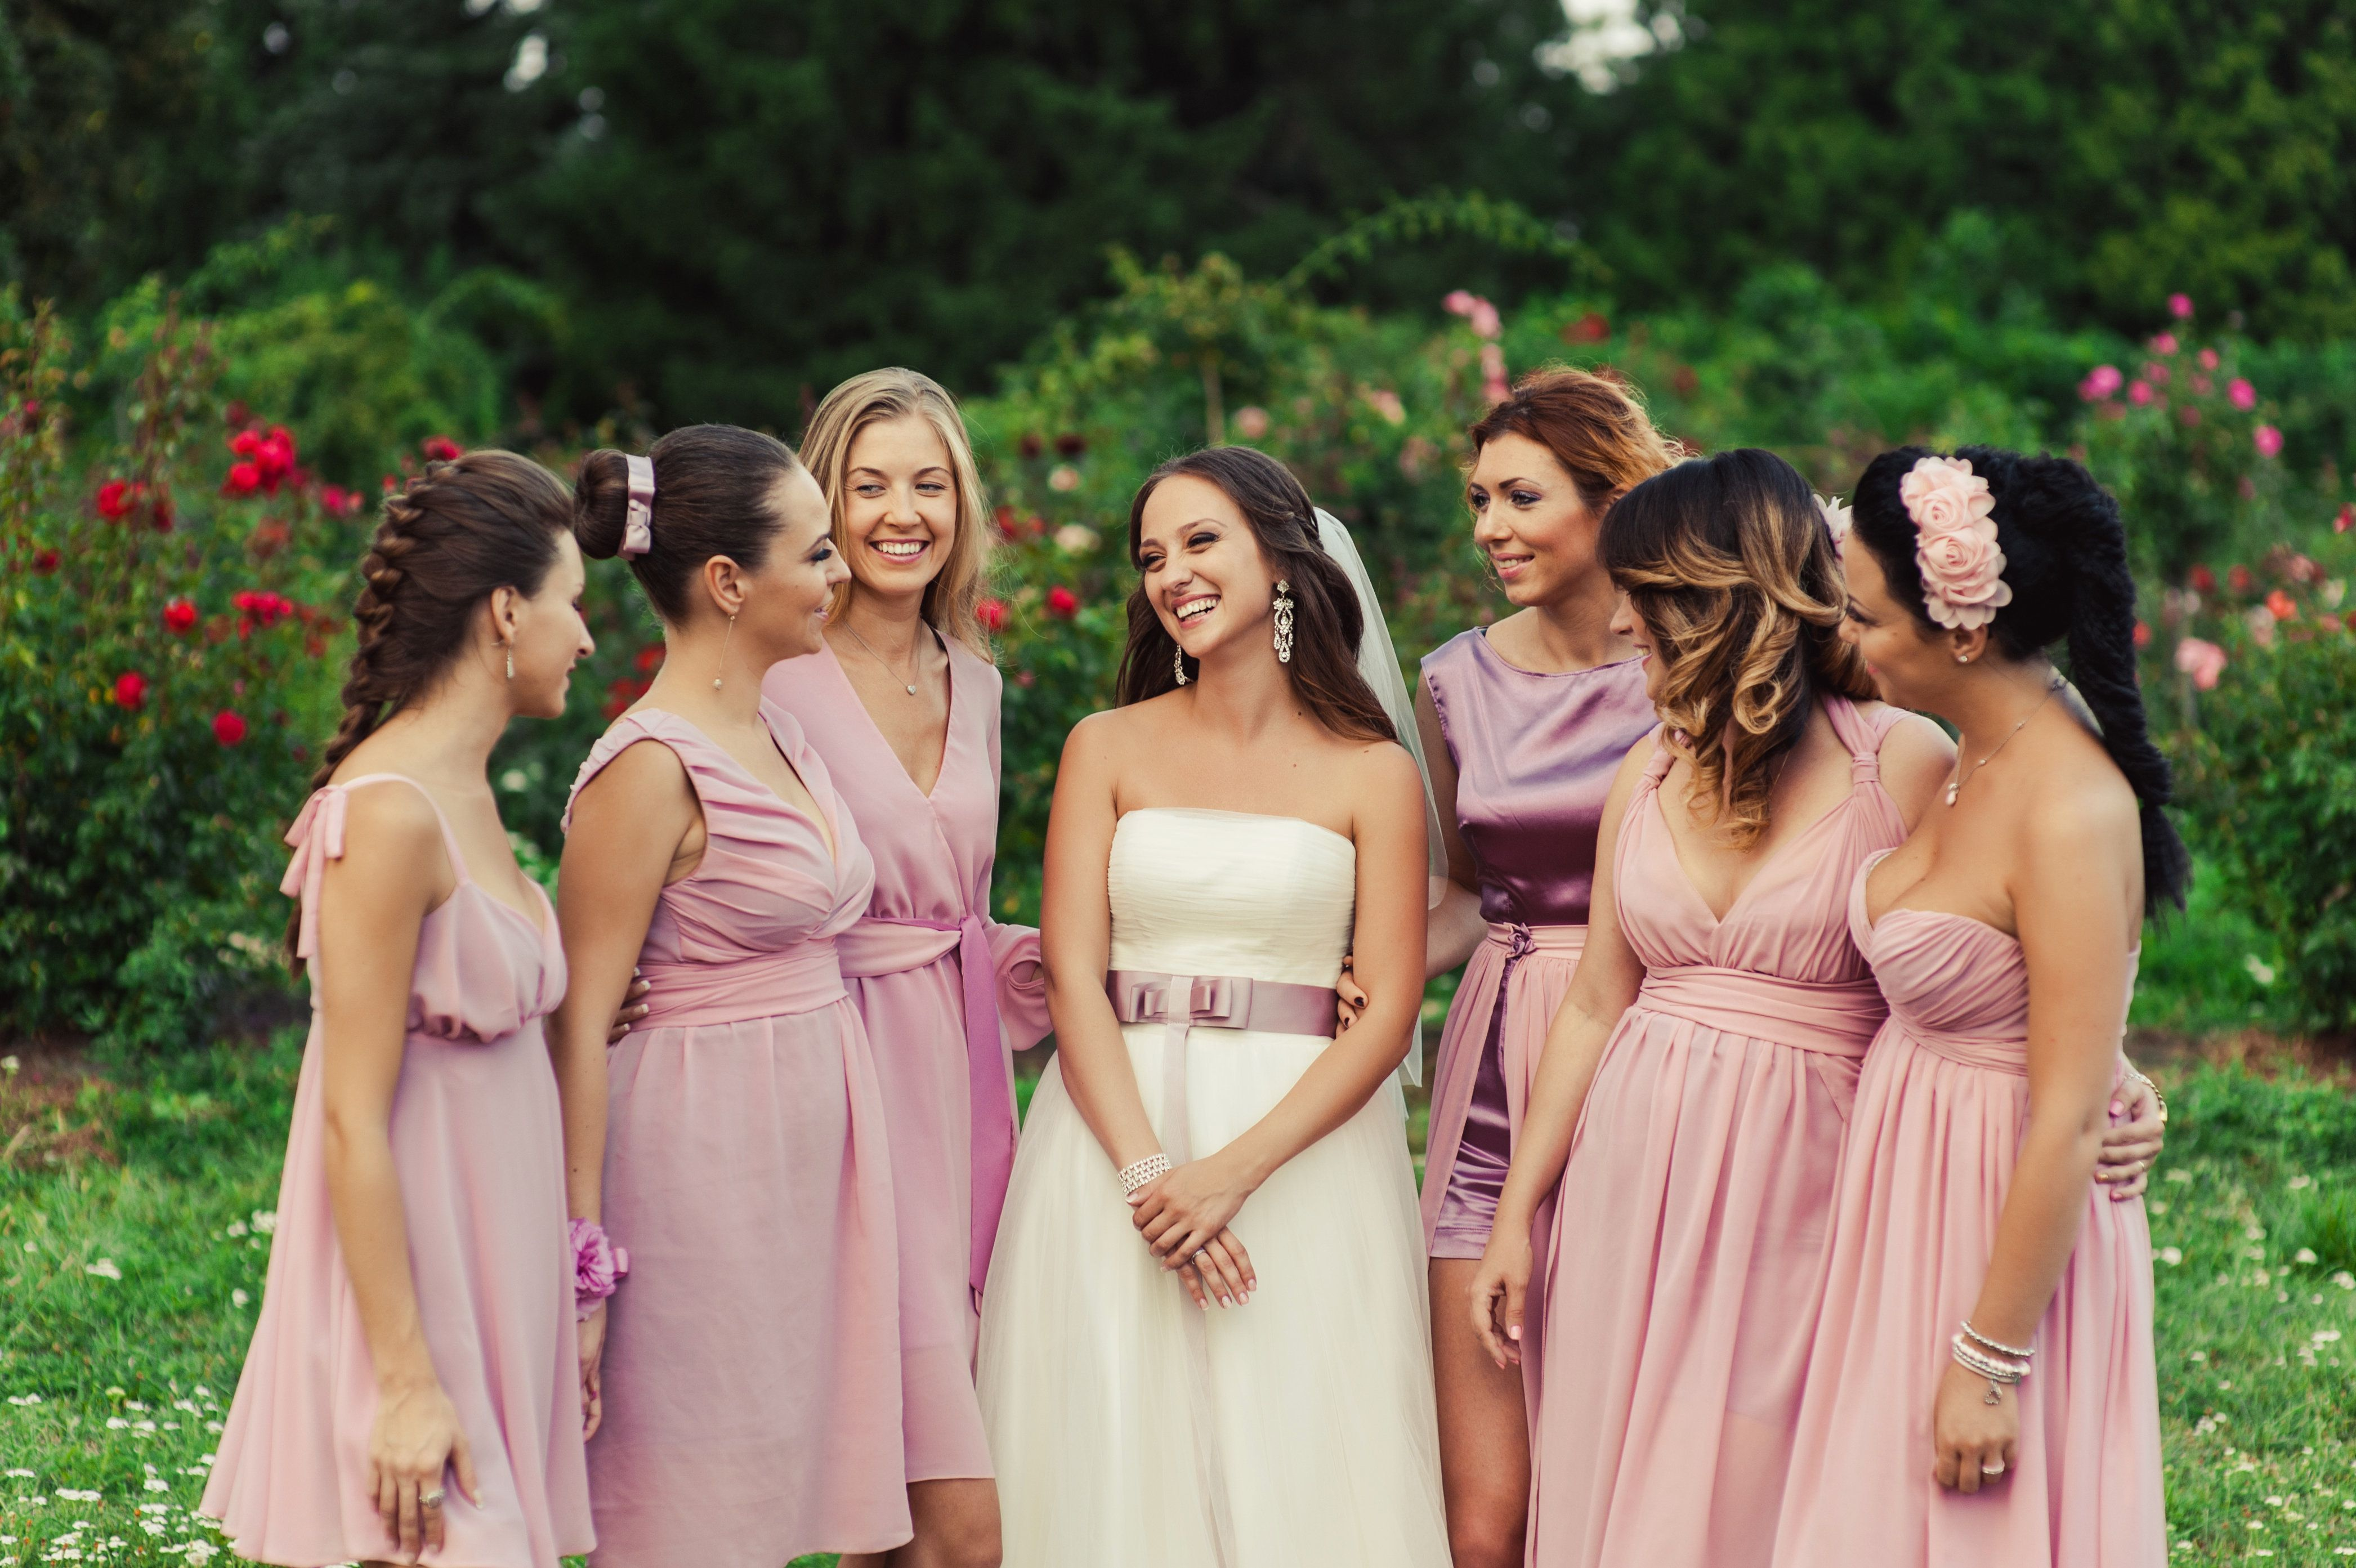 The bride with bridesmaids in pink dresses for a walk